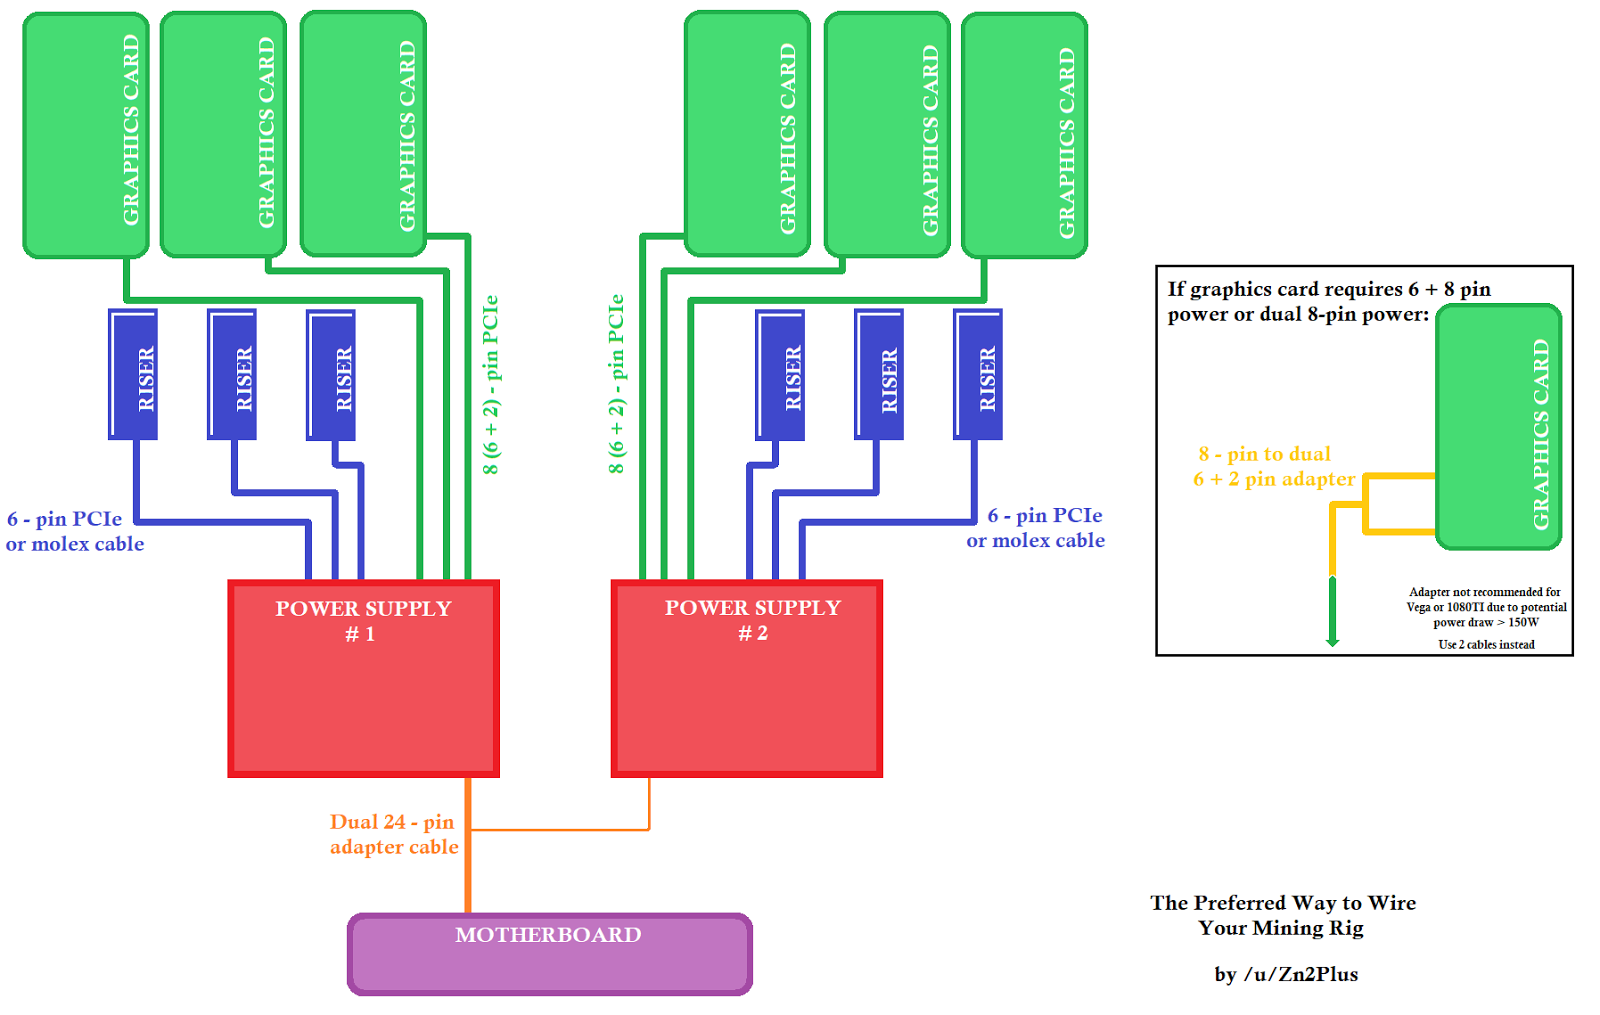 Free Nvidia Amd Gpu Mining Linux Os Baos Turnkey Pendrive Motherboard Diagram 2 Example Of The Proper Way To Power Cards Risers When Using Multiple Psus